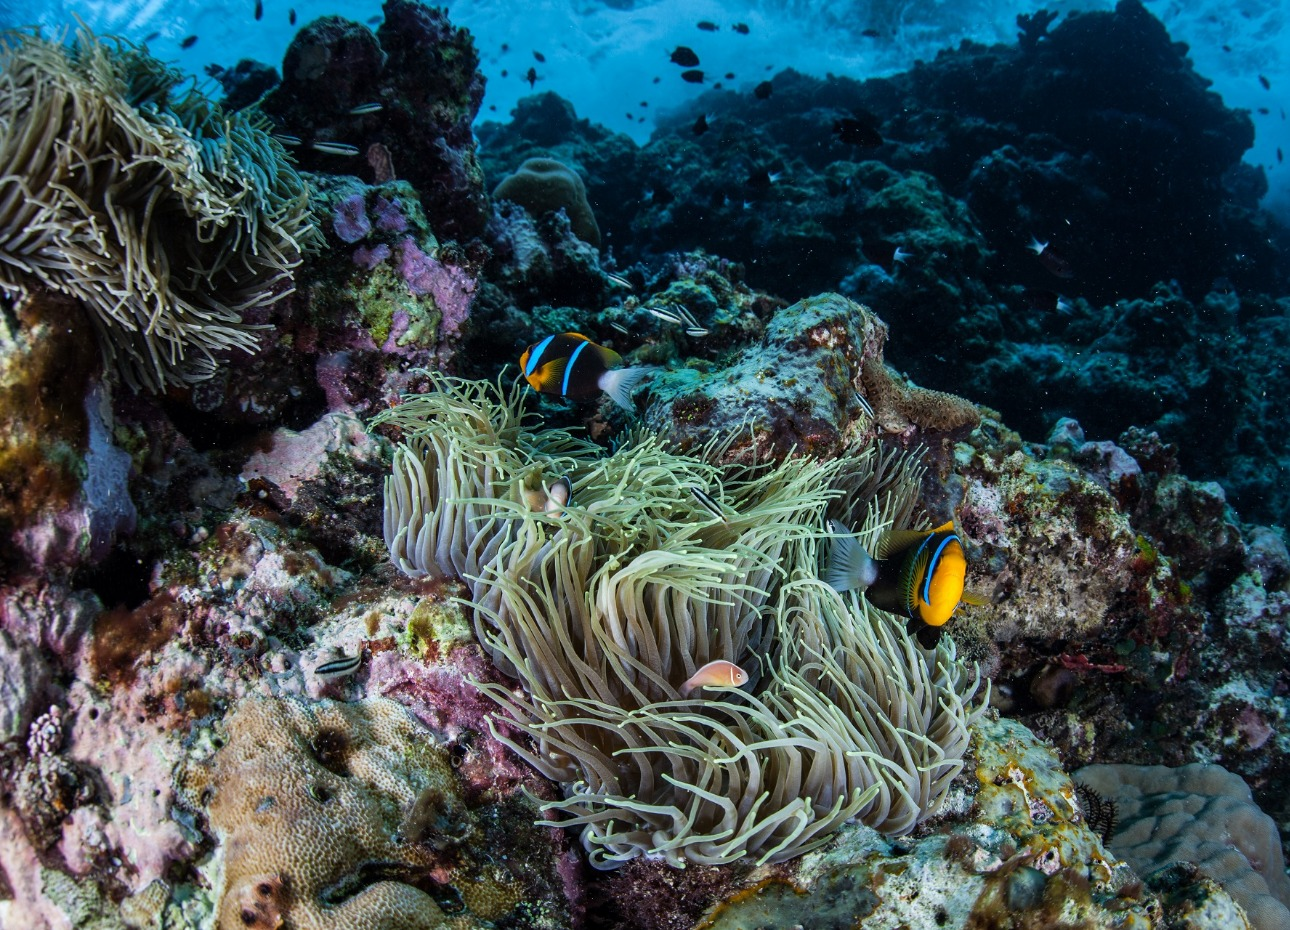 Solomon Islands, Waving Coral and Clownfish, image